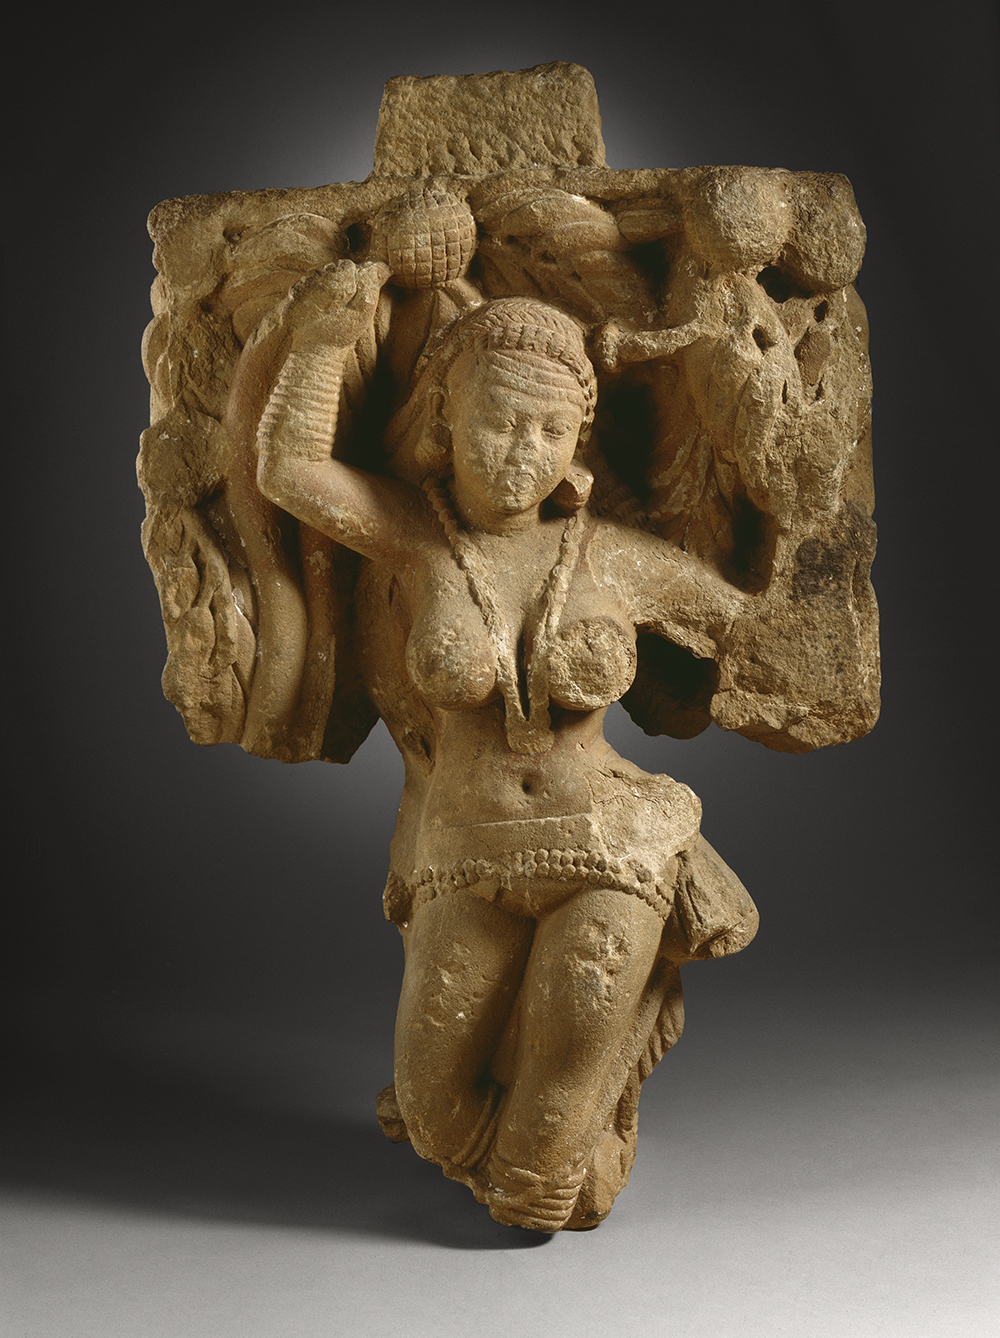 Two addorsed tree dryads, India, c. 25. The Los Angeles County Museum of Art, from the Nasli and Alice Heeramaneck Collection, purchased with funds provided by Mr. and Mrs. Allan C. Balch.